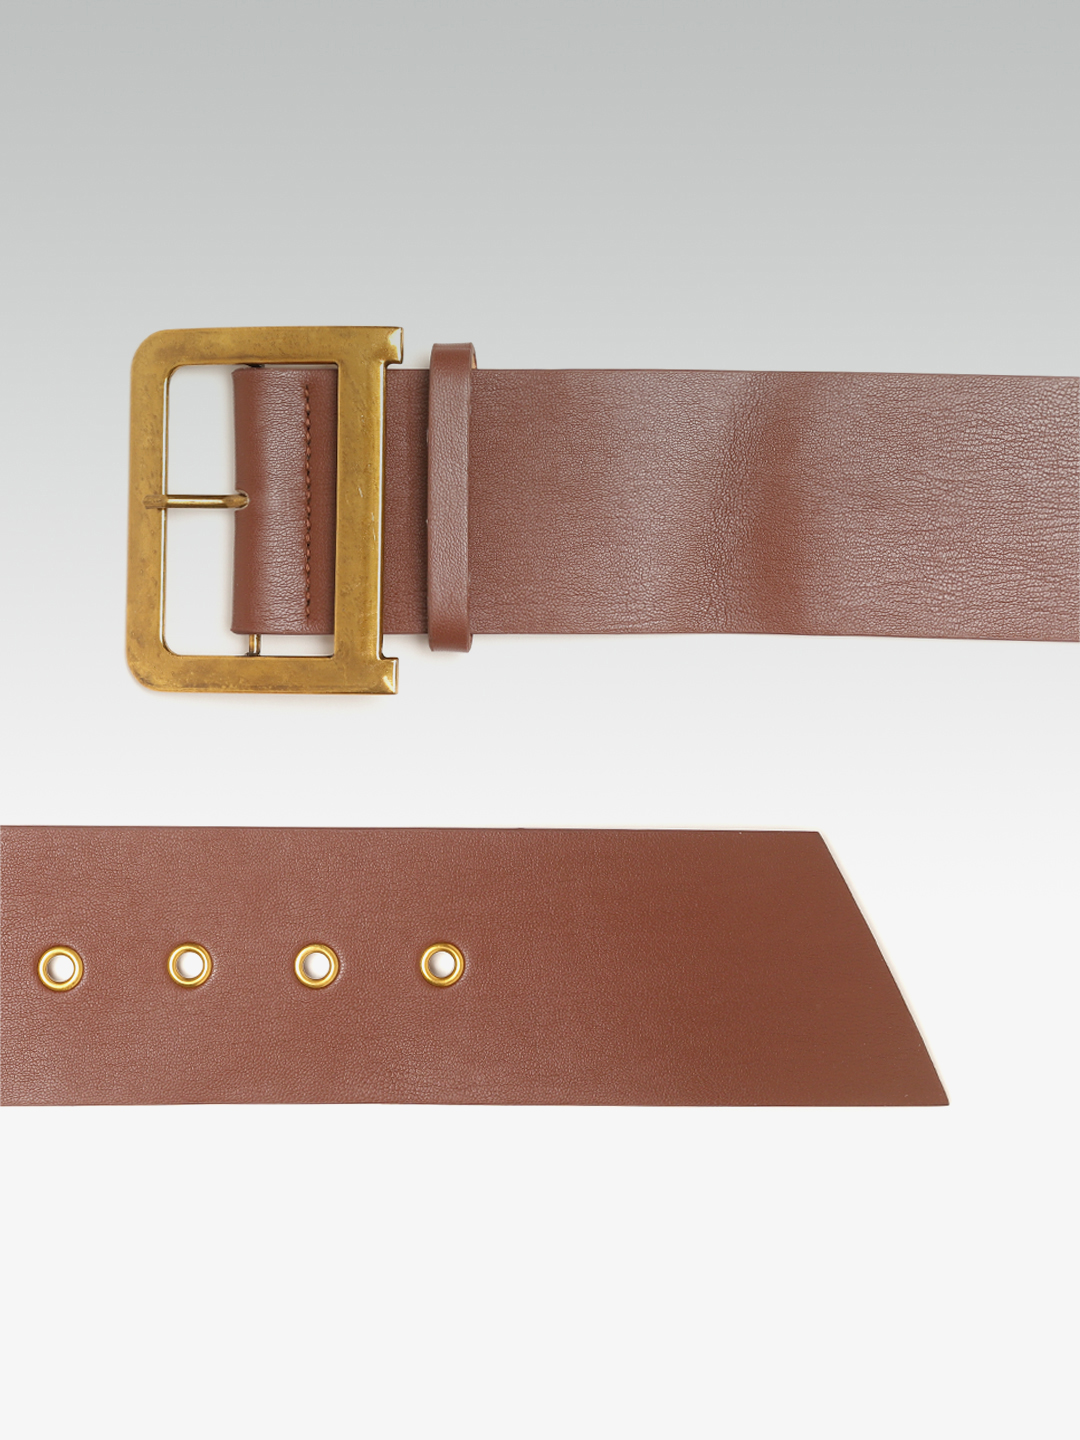 Belts-The Style Wave Brown Belt4